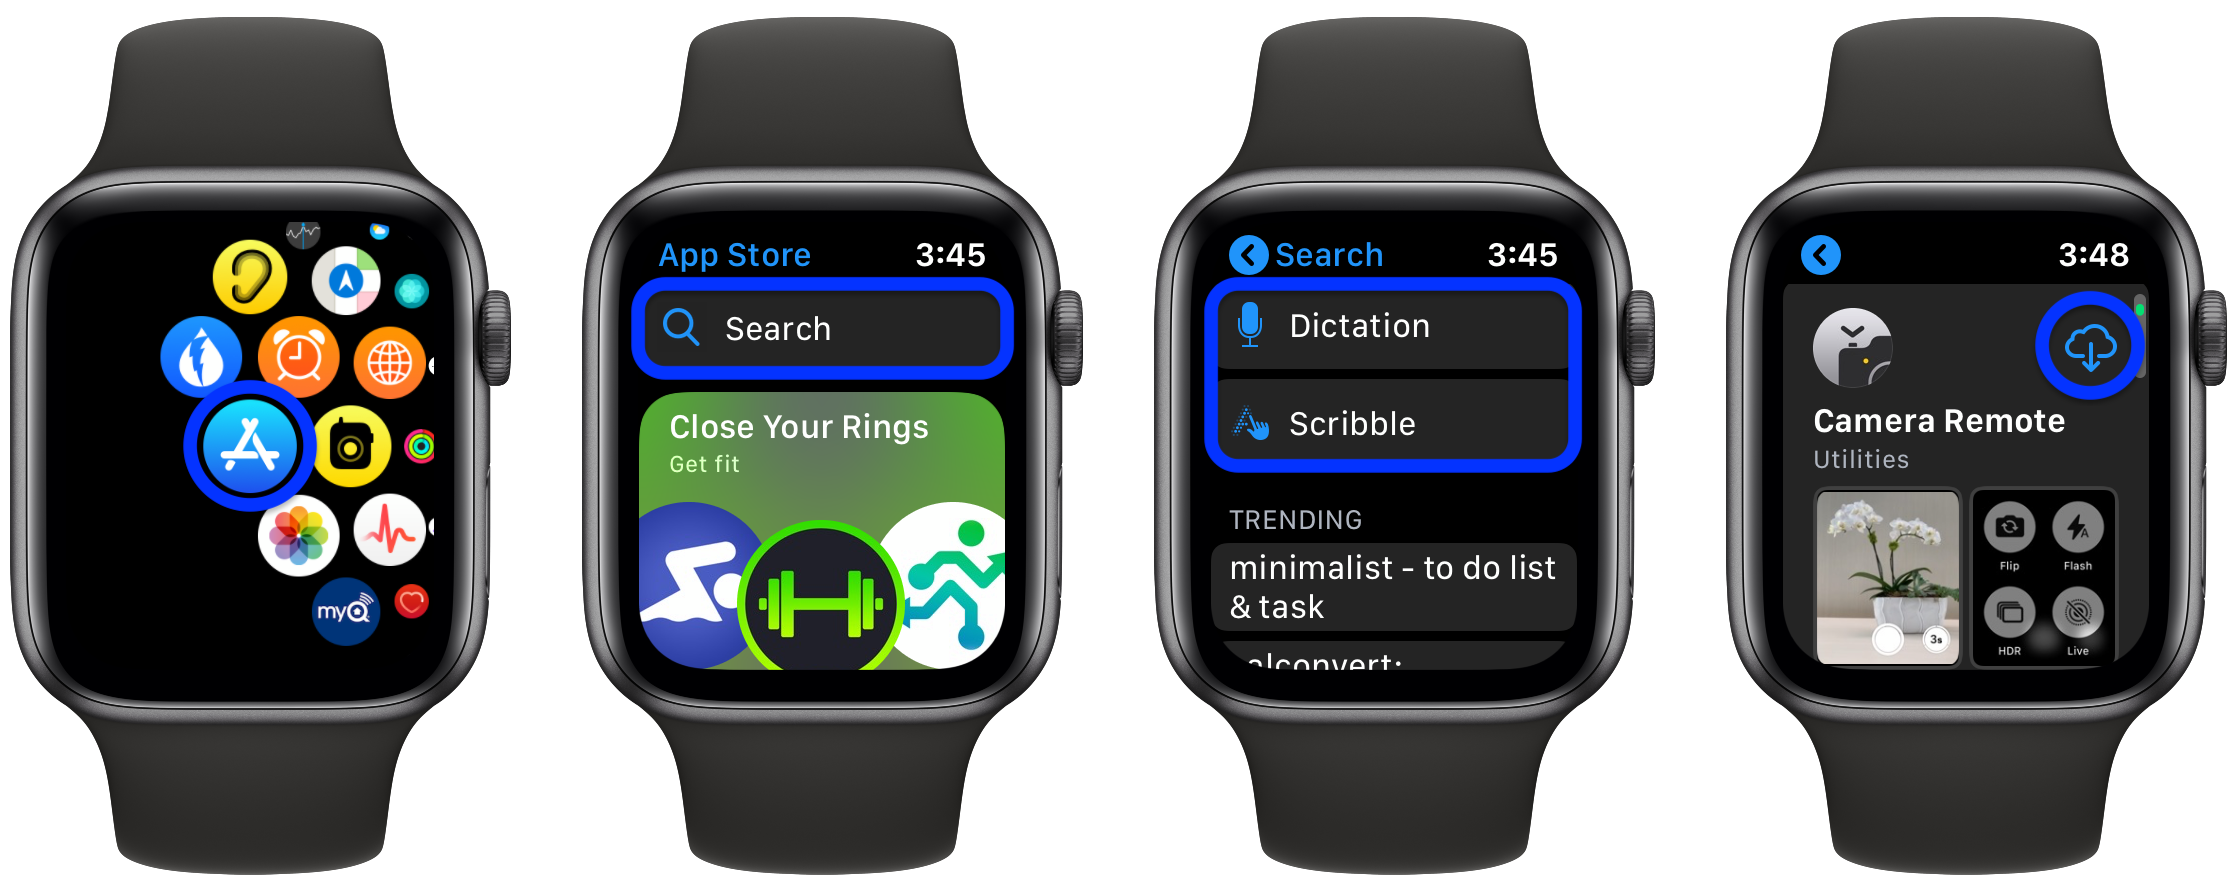 How to reinstall deleted Apple Watch apps walkthrough